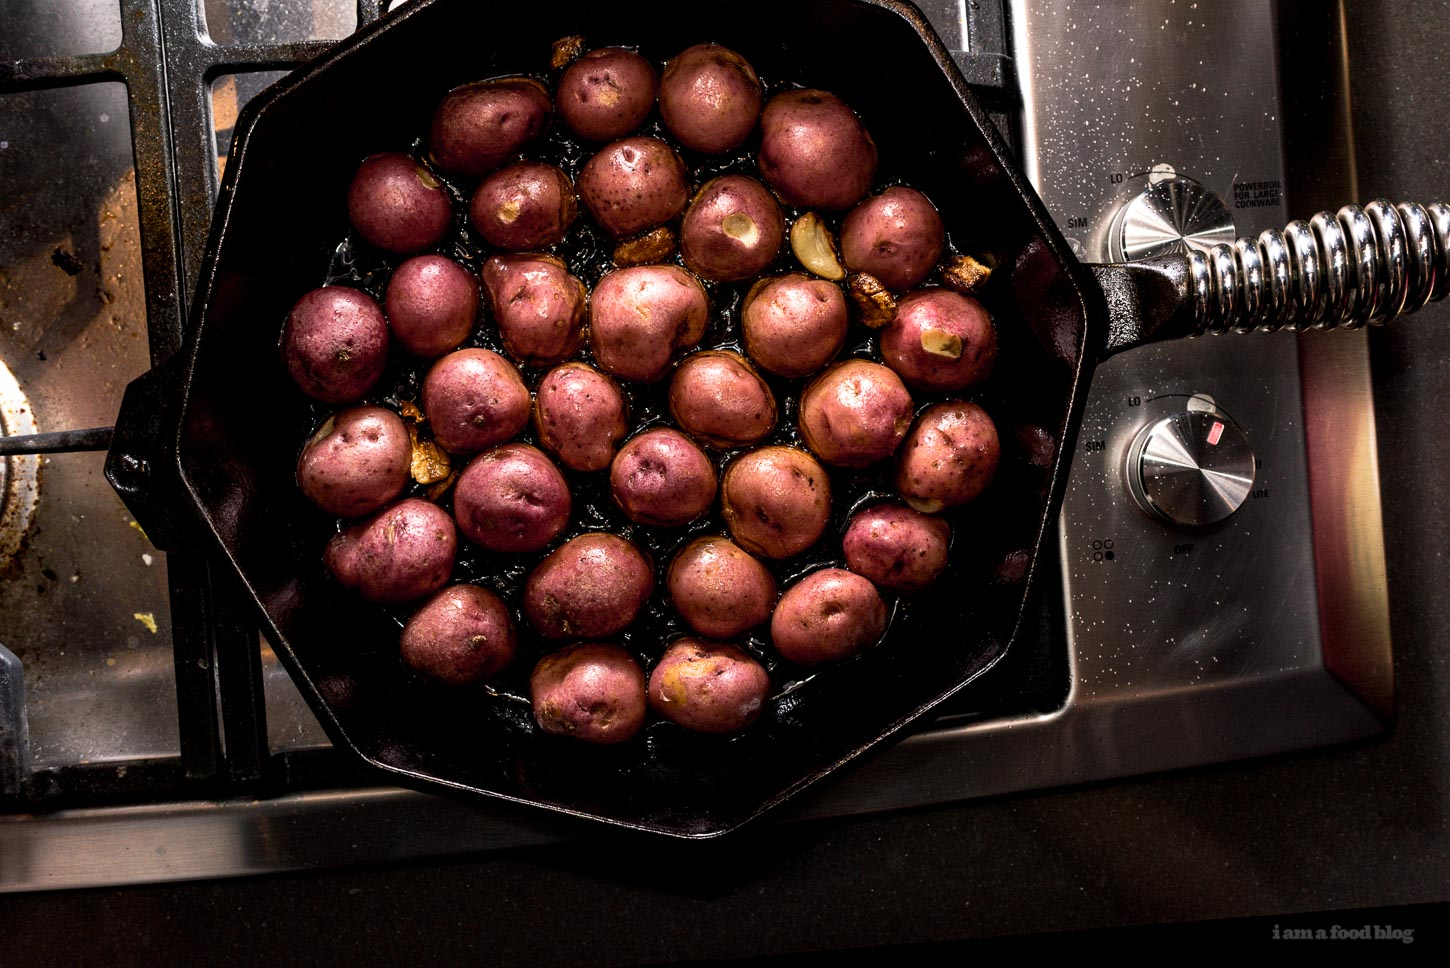 Crispy Stovetop Roasted Red Potatoes Recipe | www.iamafoodblog.com